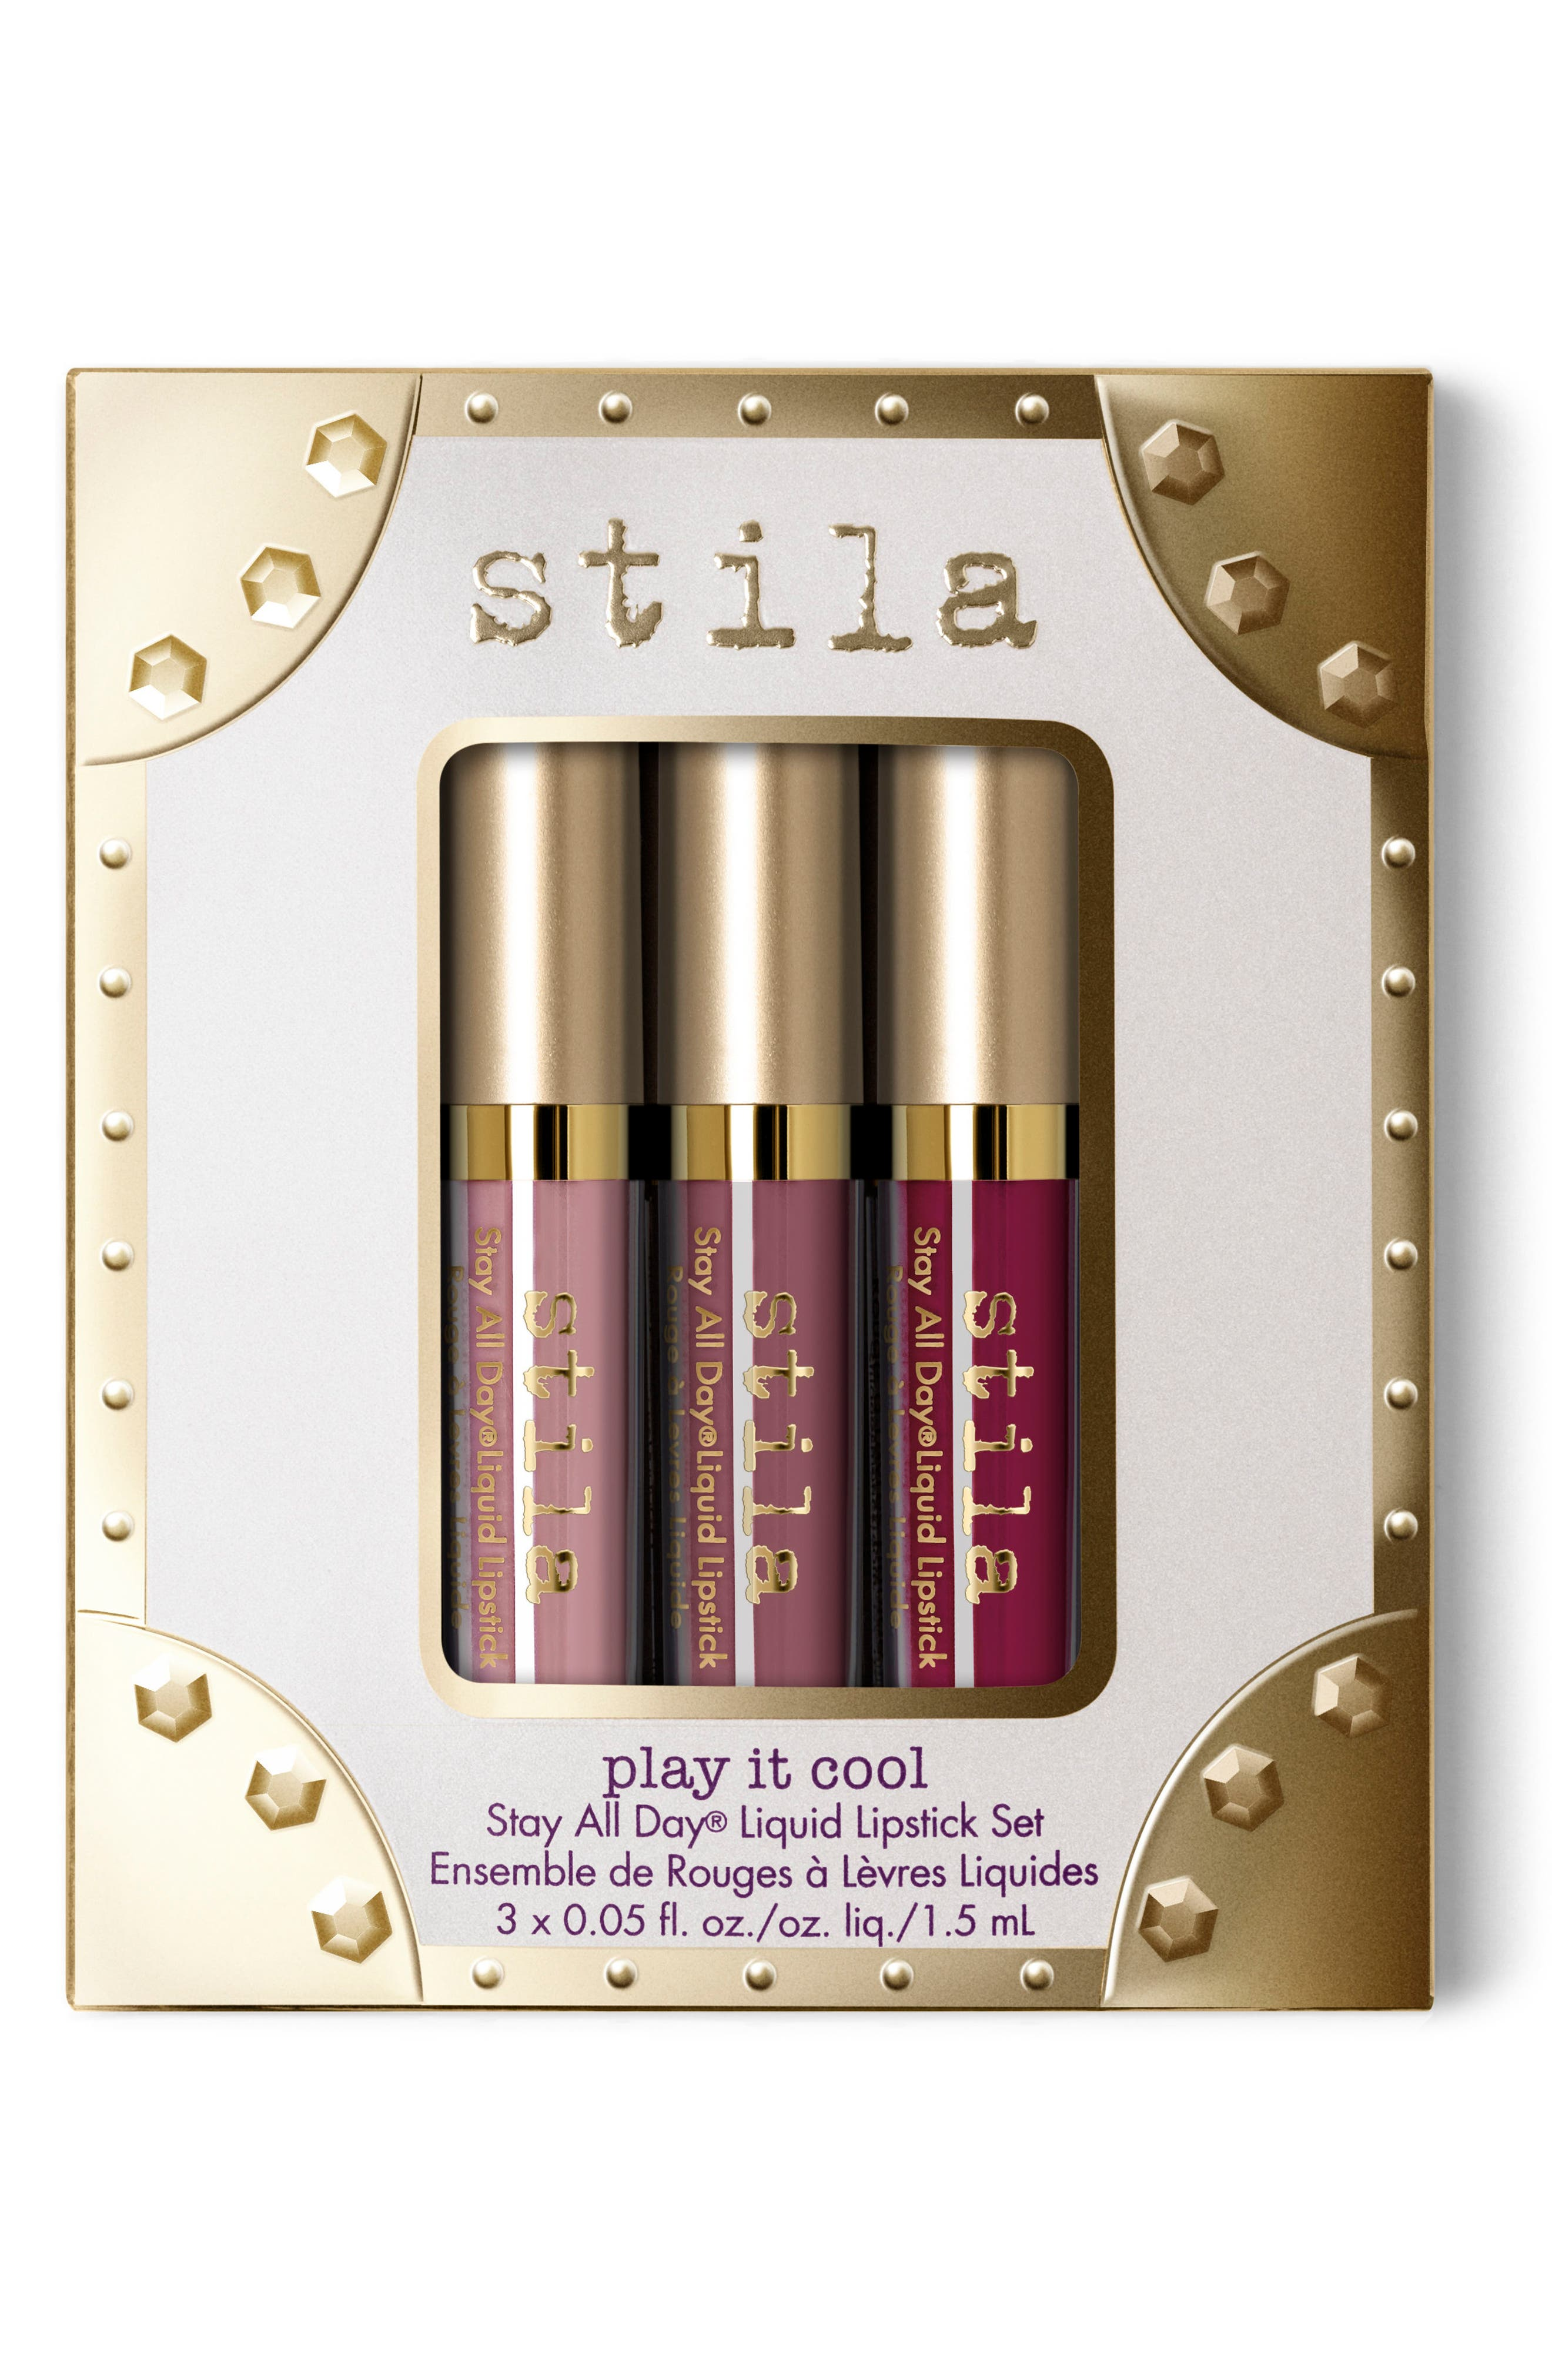 Alternate Image 1 Selected - stila play it cool stay all day liquid lipstick set ($33 Value)